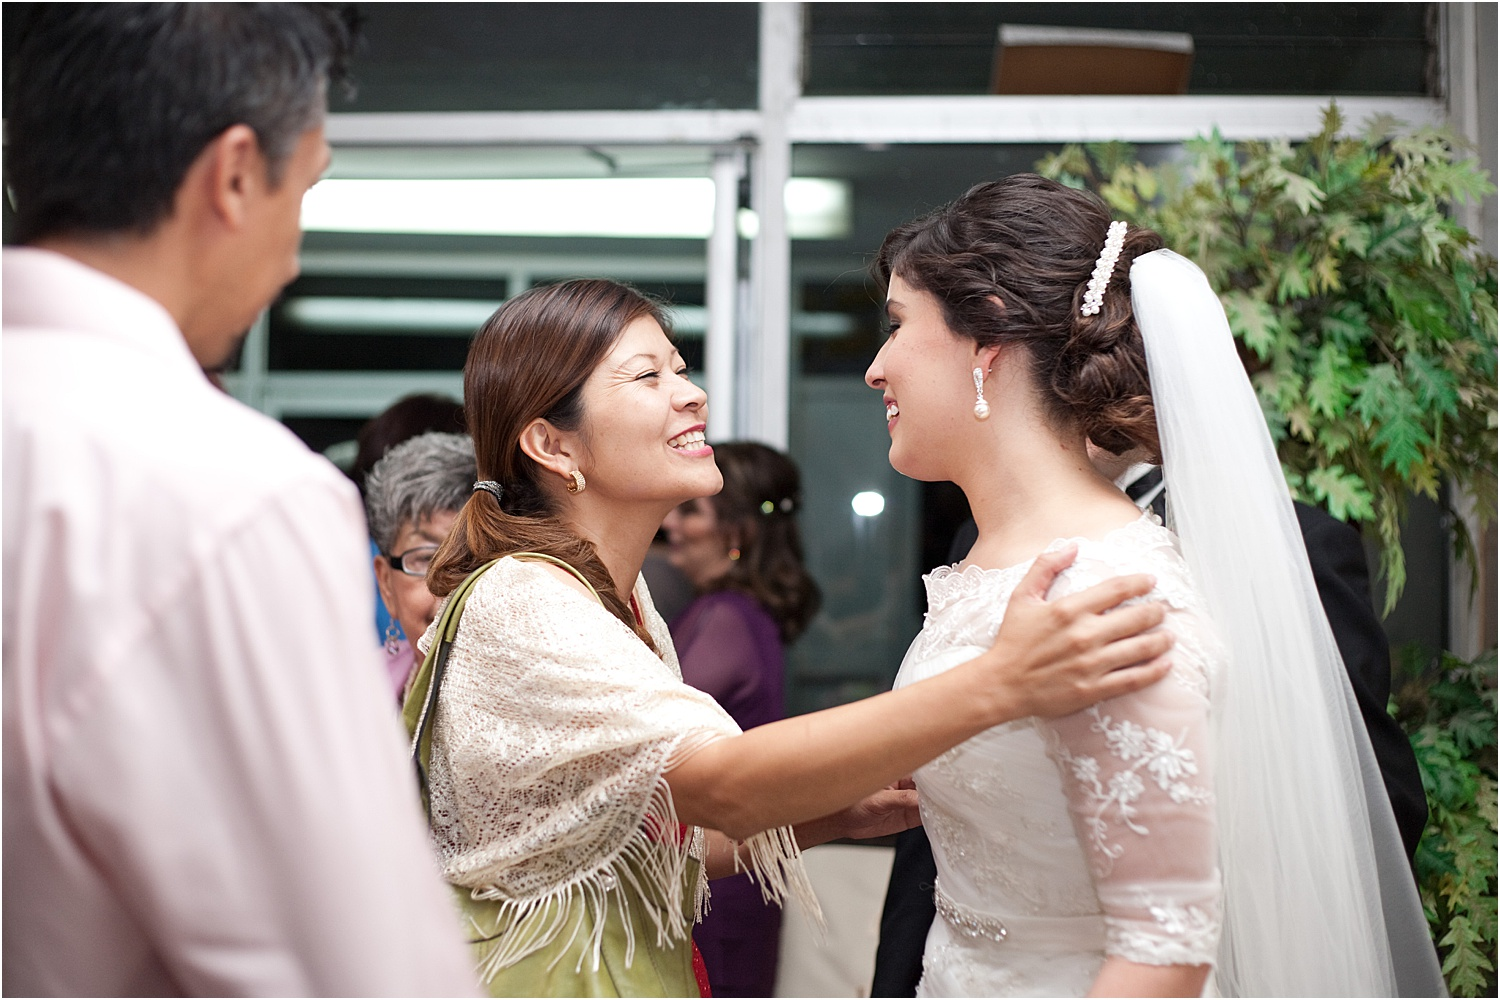 Image: Often, second shooters get the candid photos during a wedding event, like this one above.